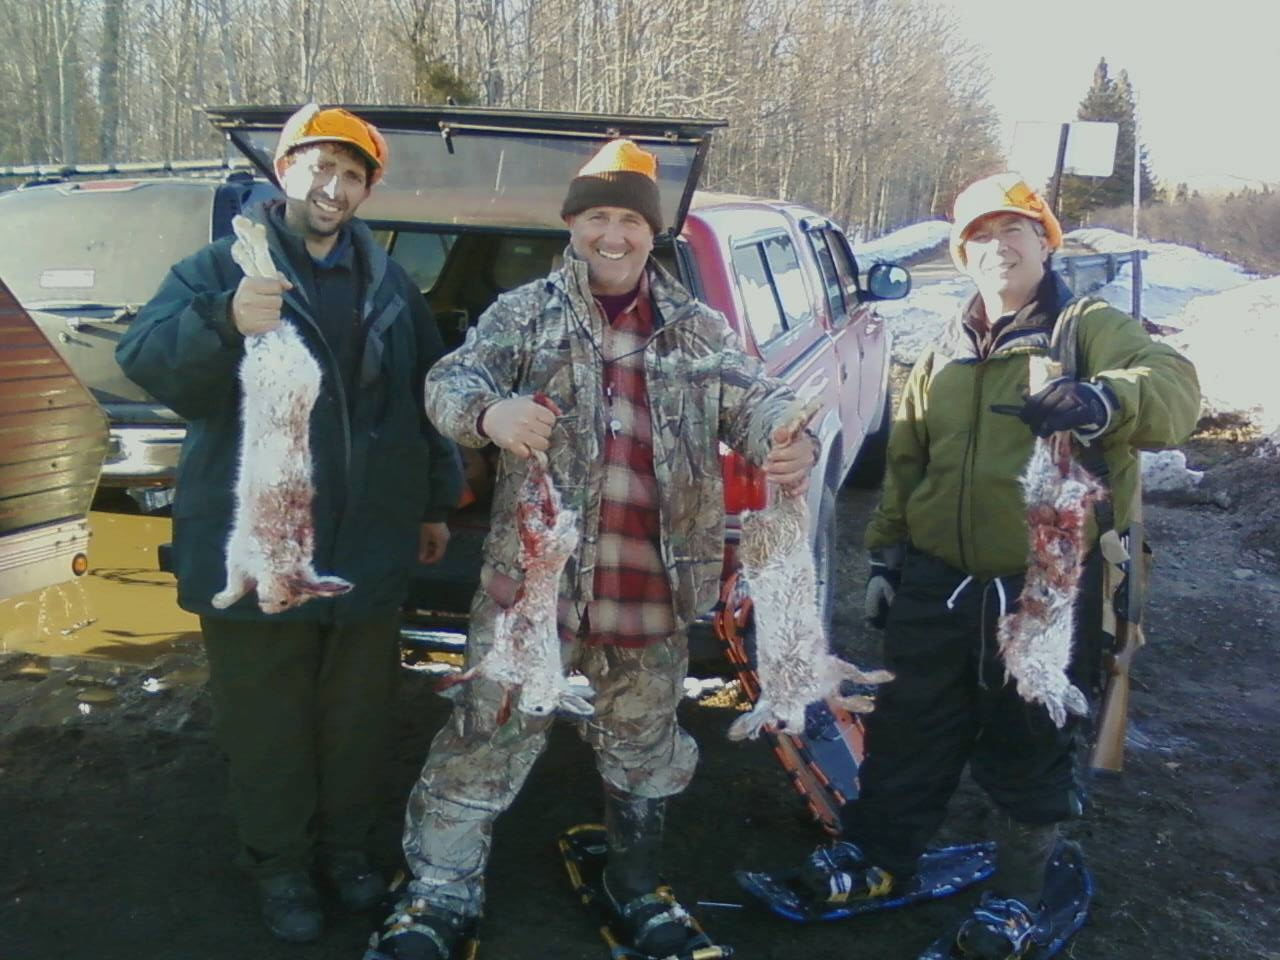 Guided snowshoe hare hunts in the Adirondacks. www.flyfishADK.com